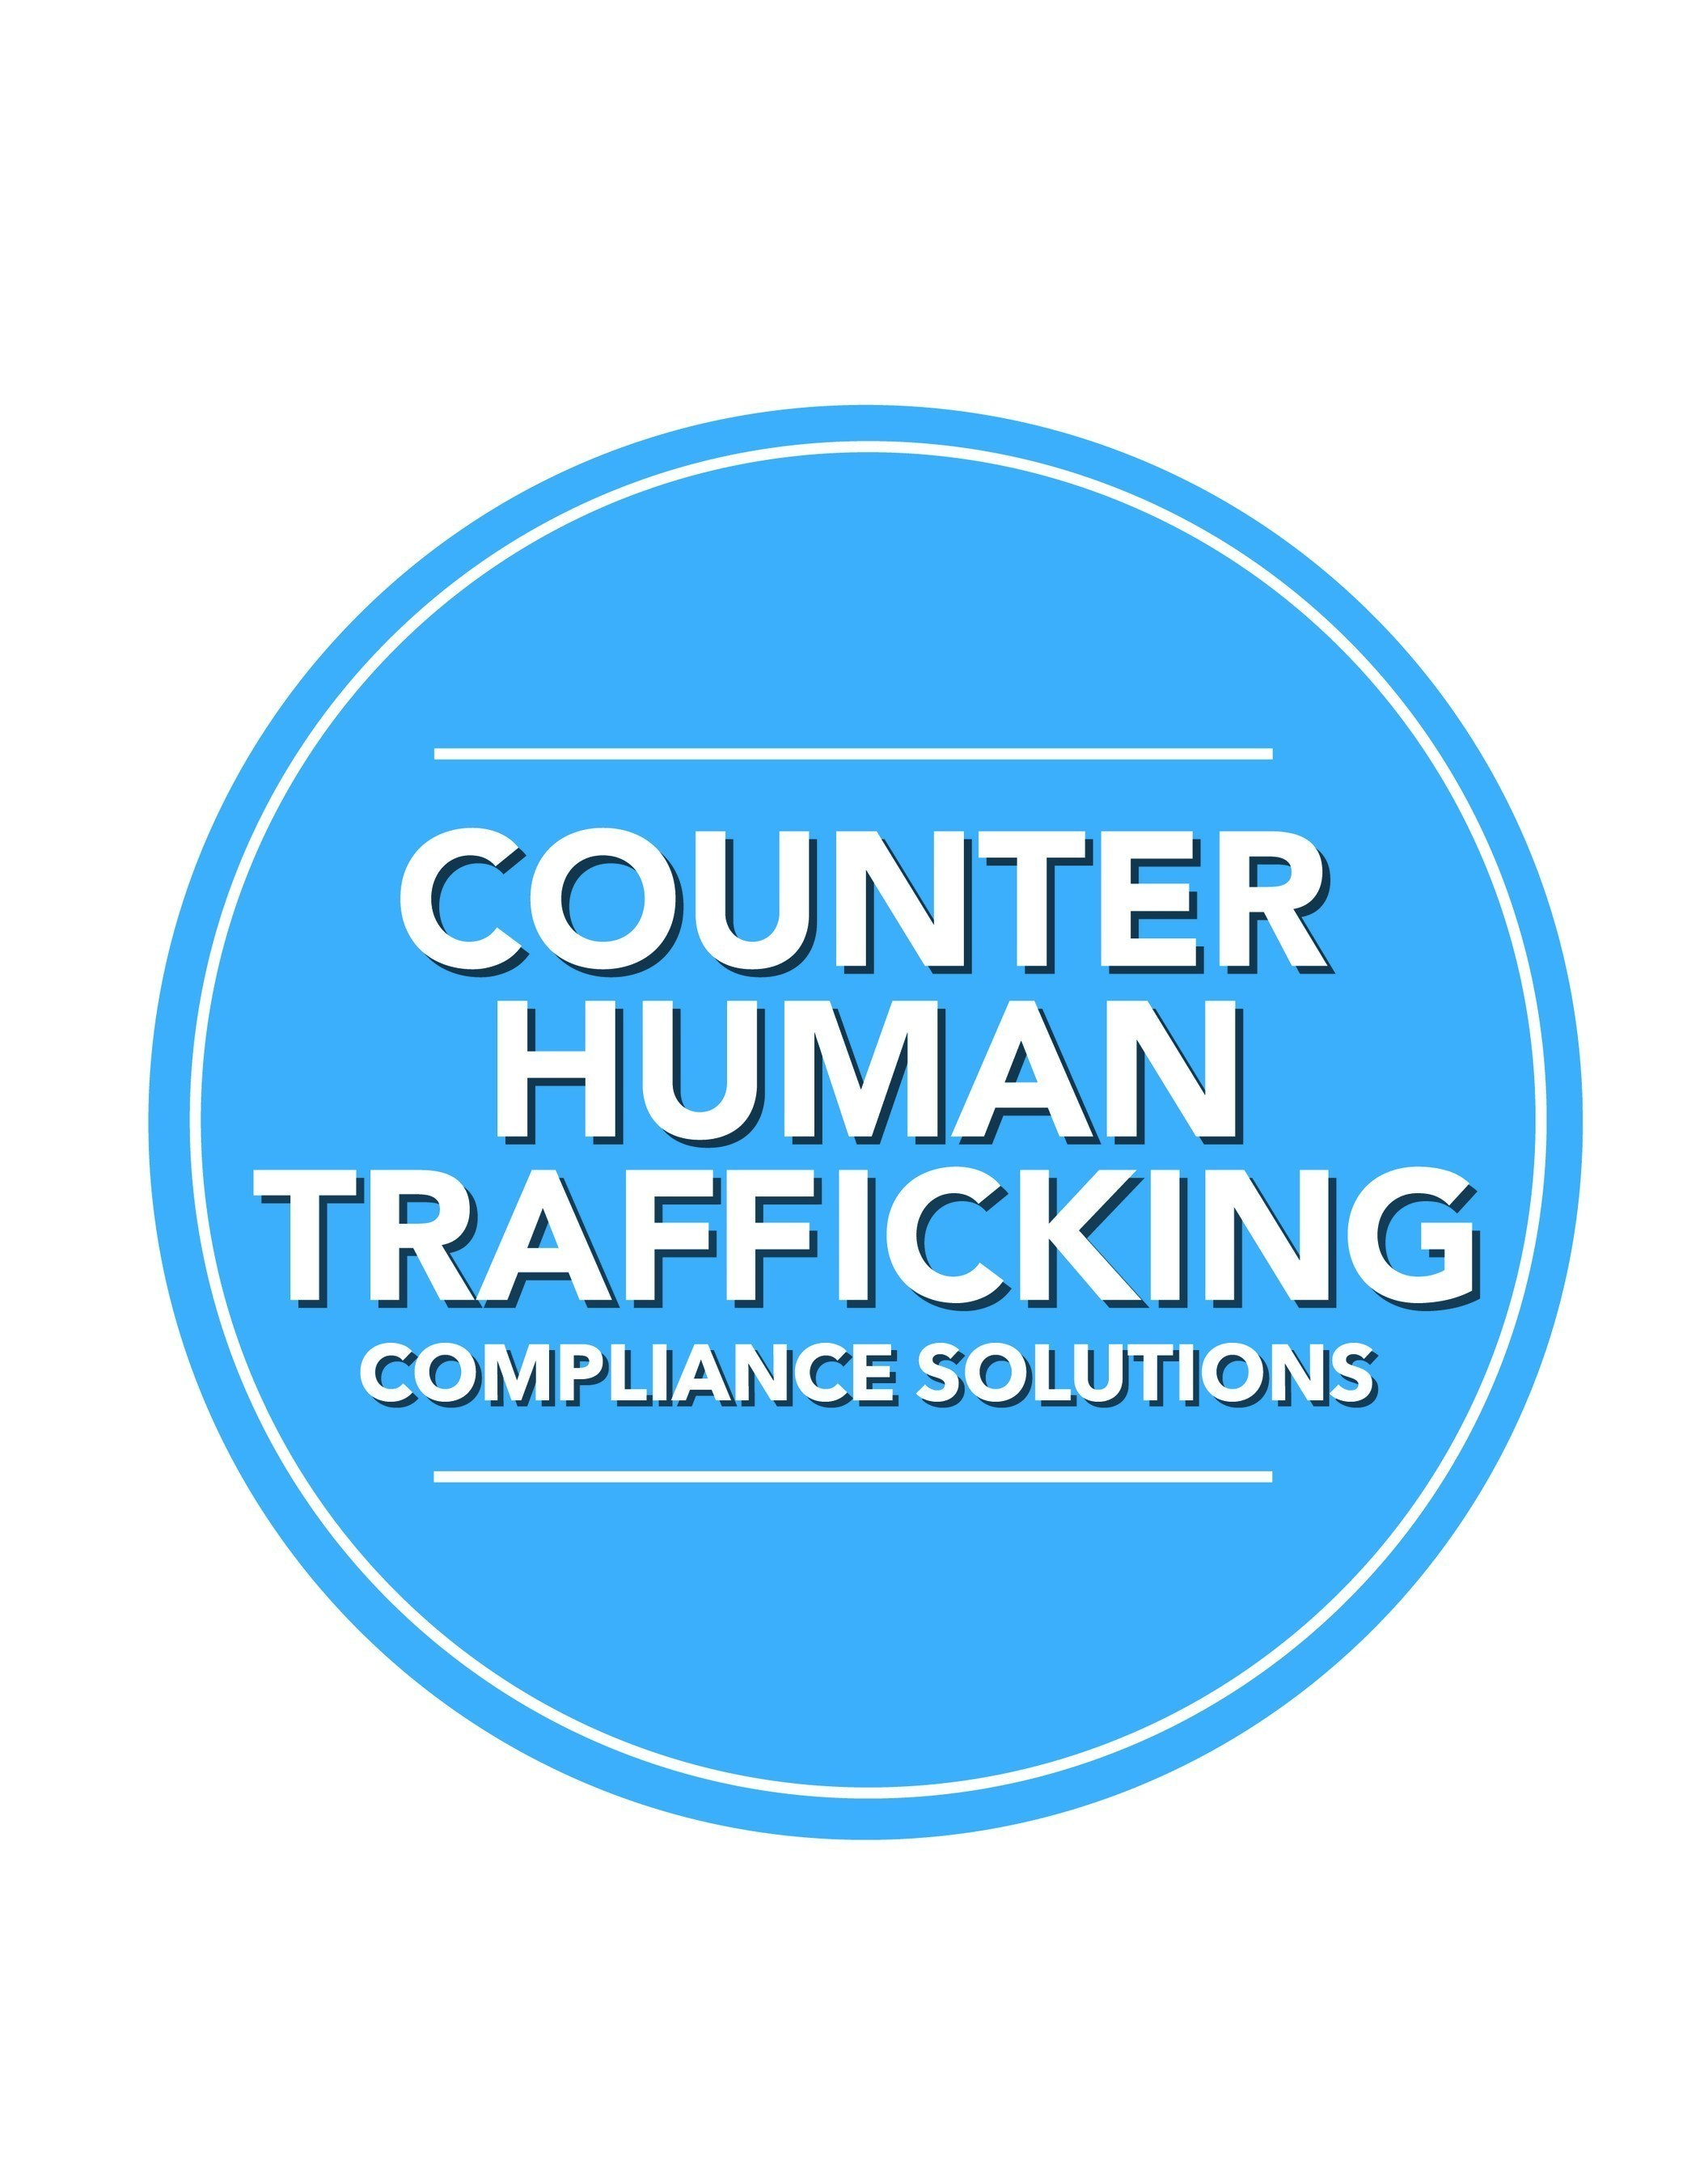 Linda Rizk, Thomas A. Rizk, and Rizk Ventures Launch Counter Human Trafficking Compliance Solutions, a Global Compliance and Advisory Company